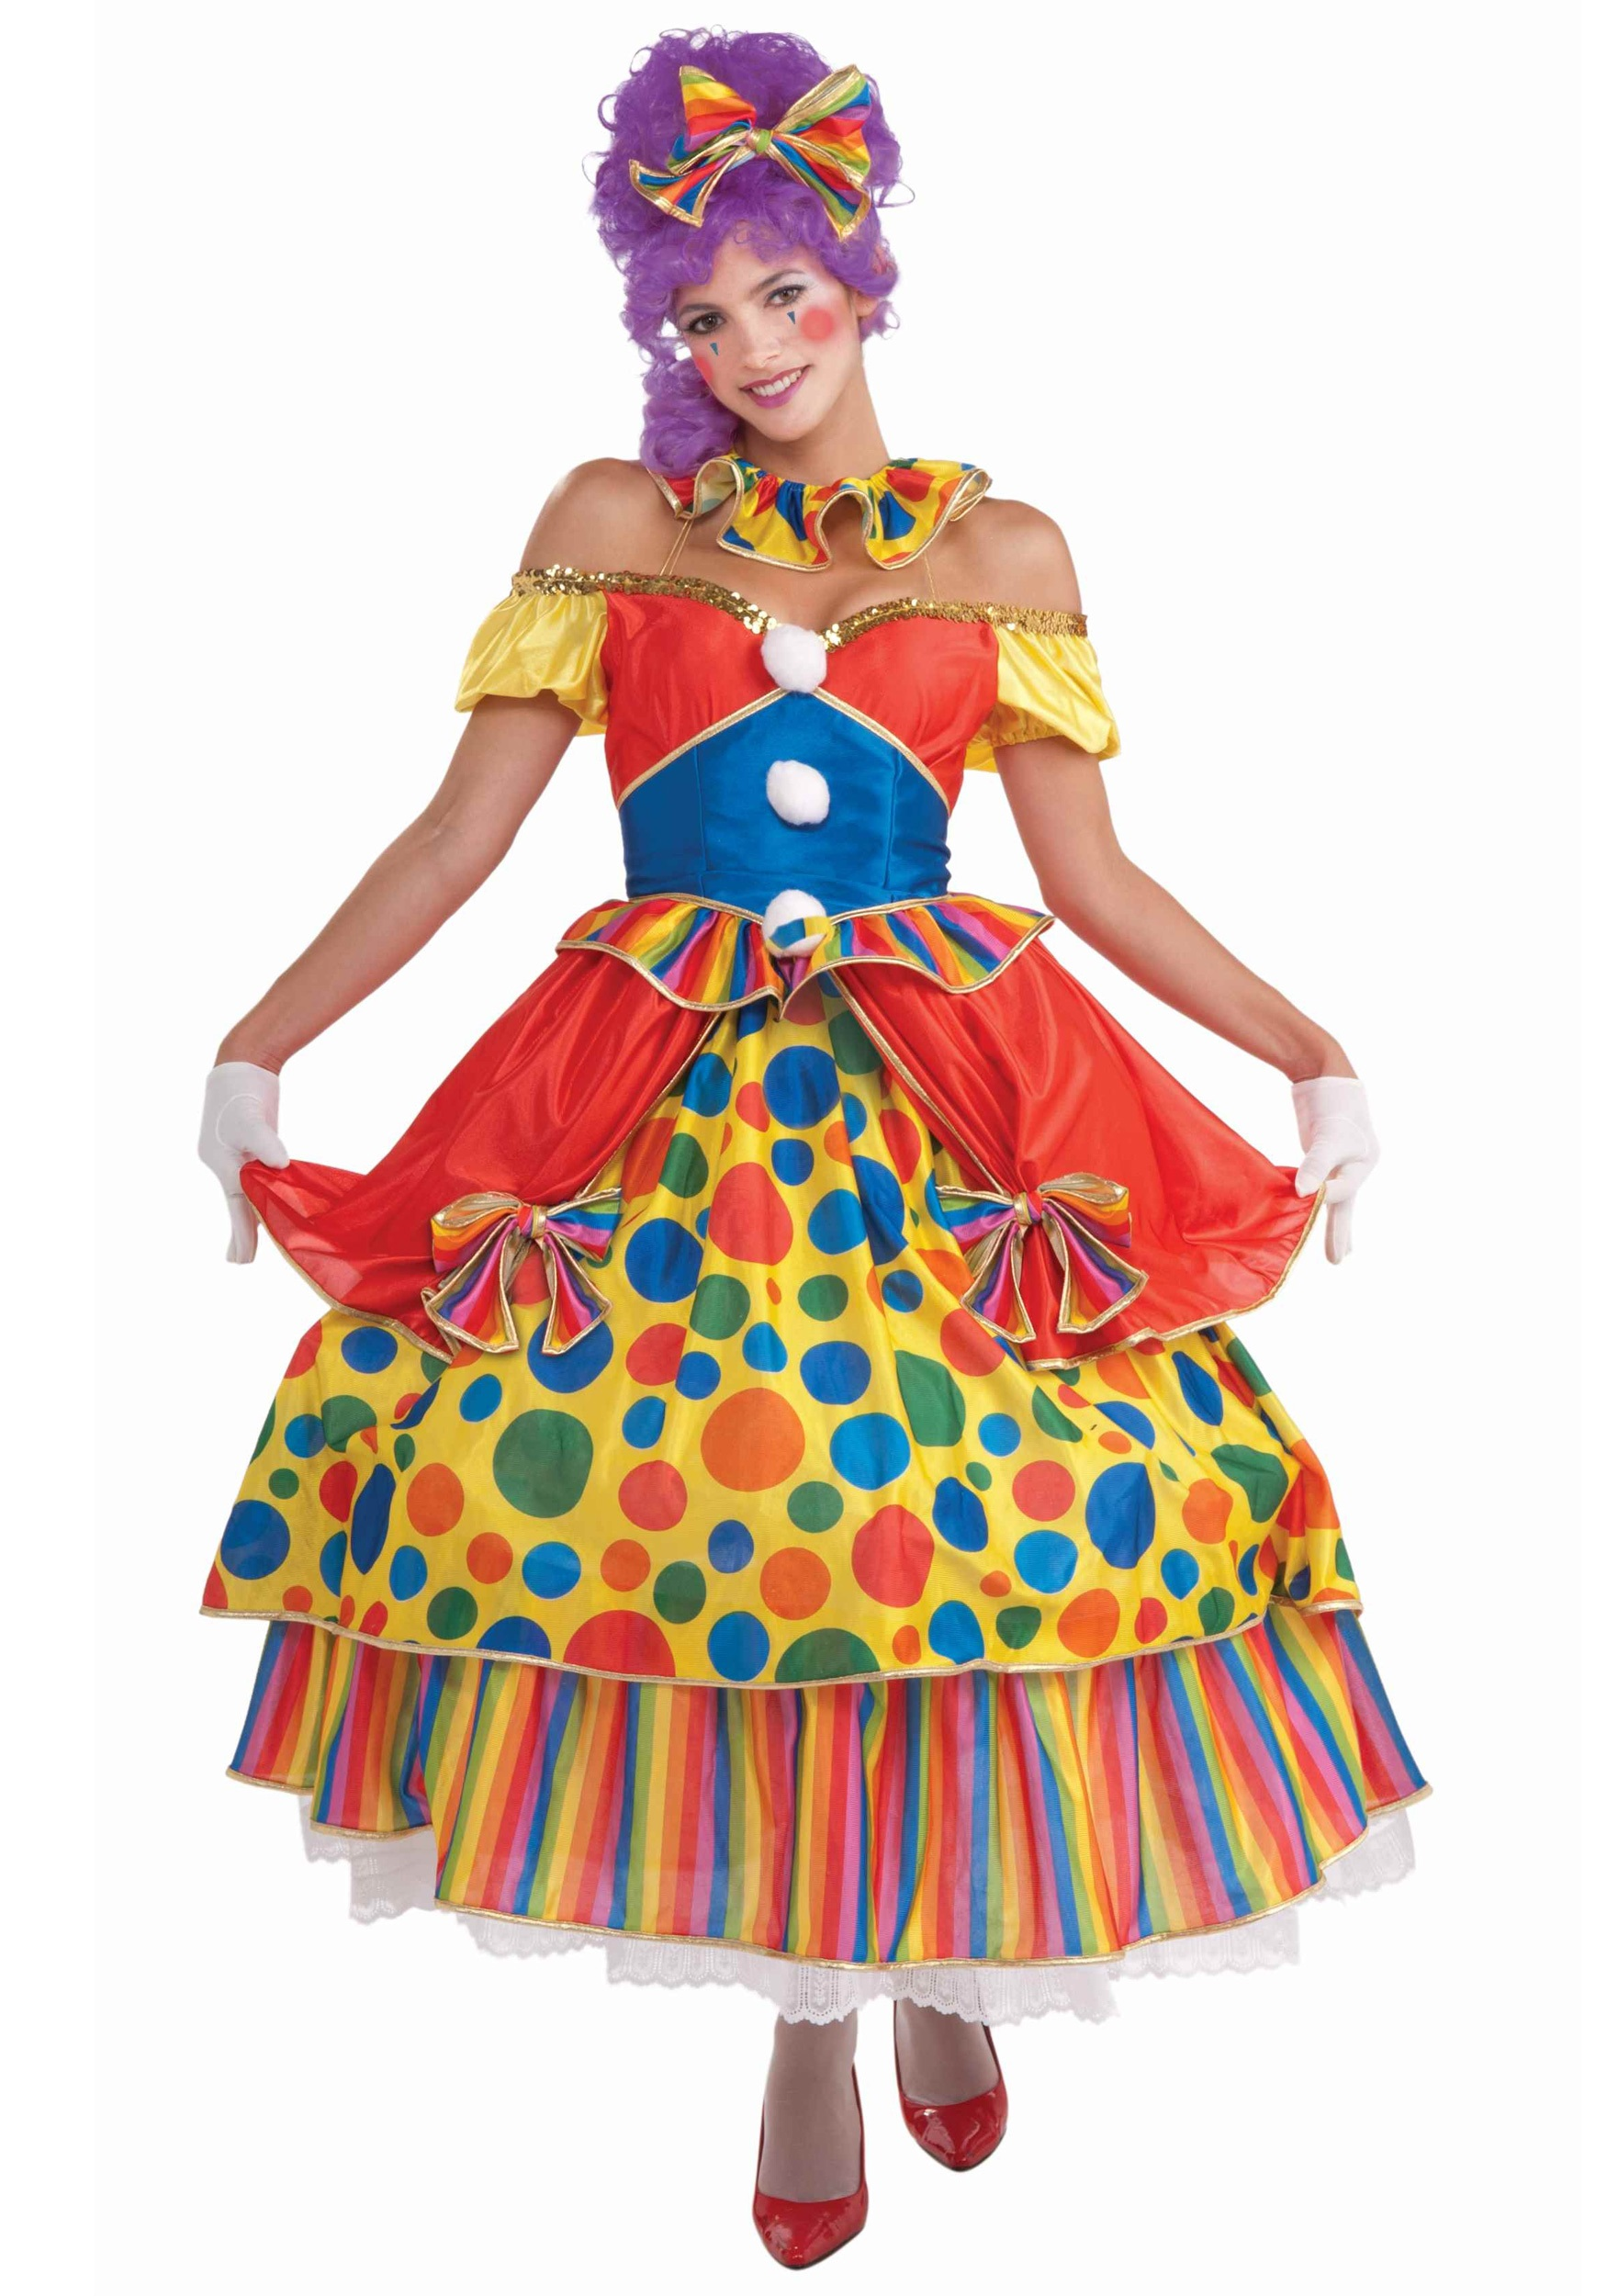 Be the cutest clown around in this women's hoop-dress clown costume!